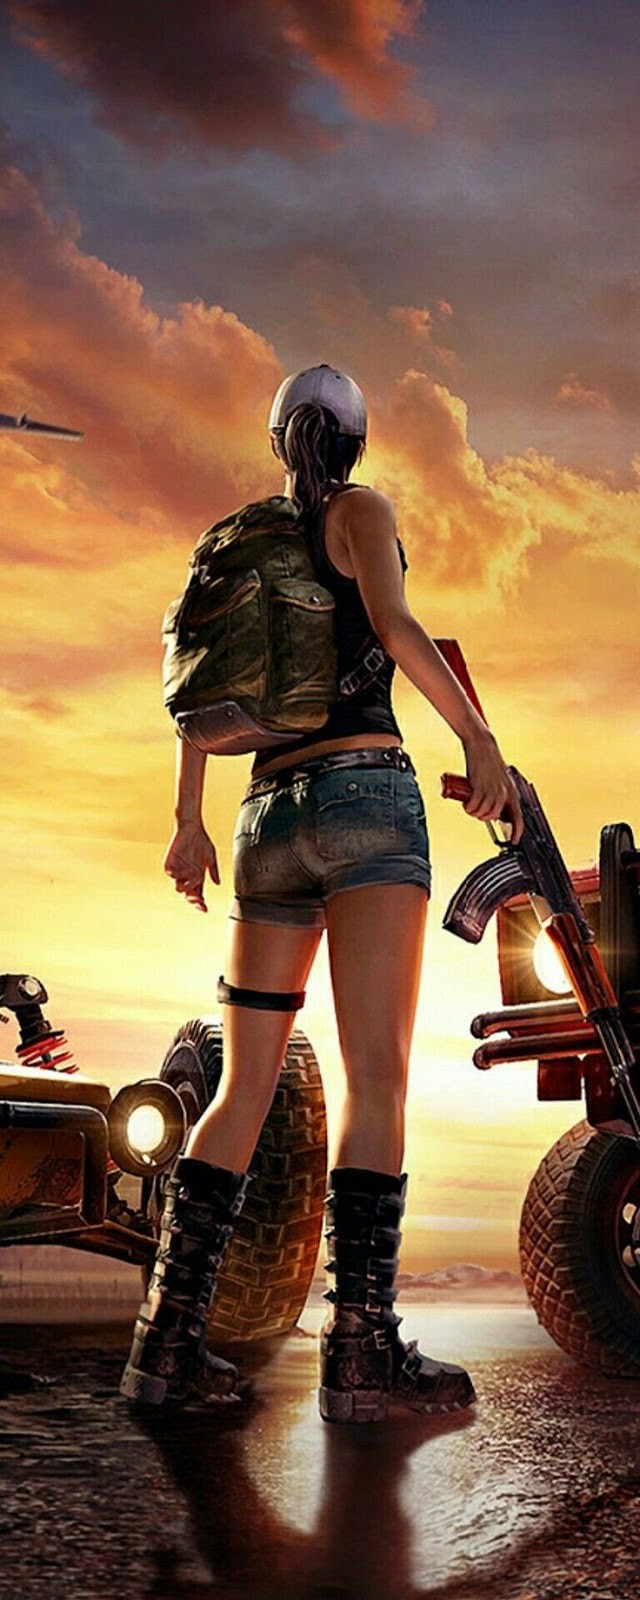 PUBG player hd wallpaper, status ,dp  picture collection for download.